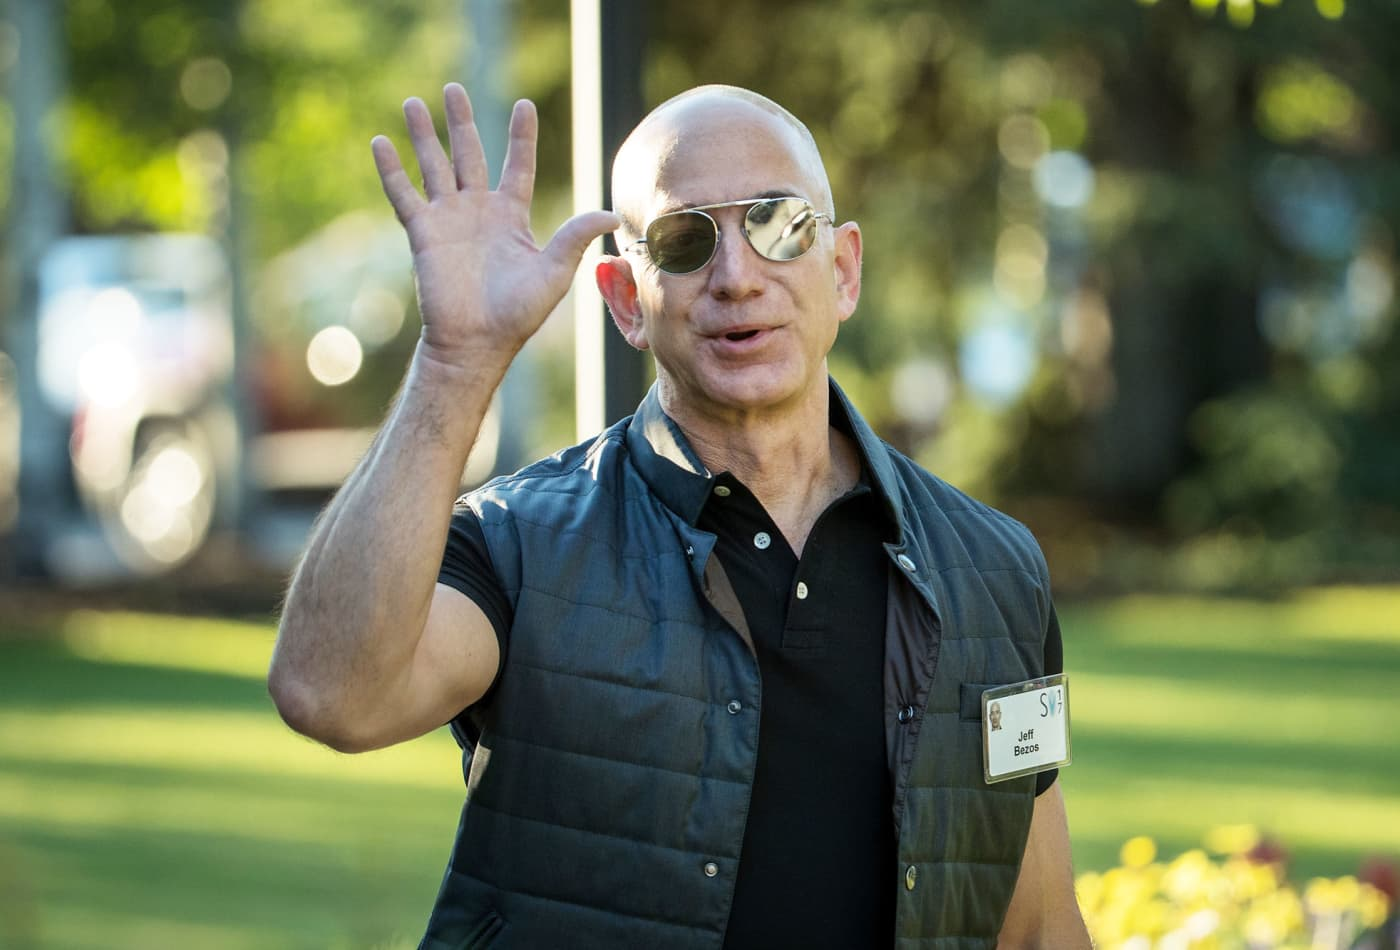 Amazon just passed Alphabet to become the world's second most valuable company